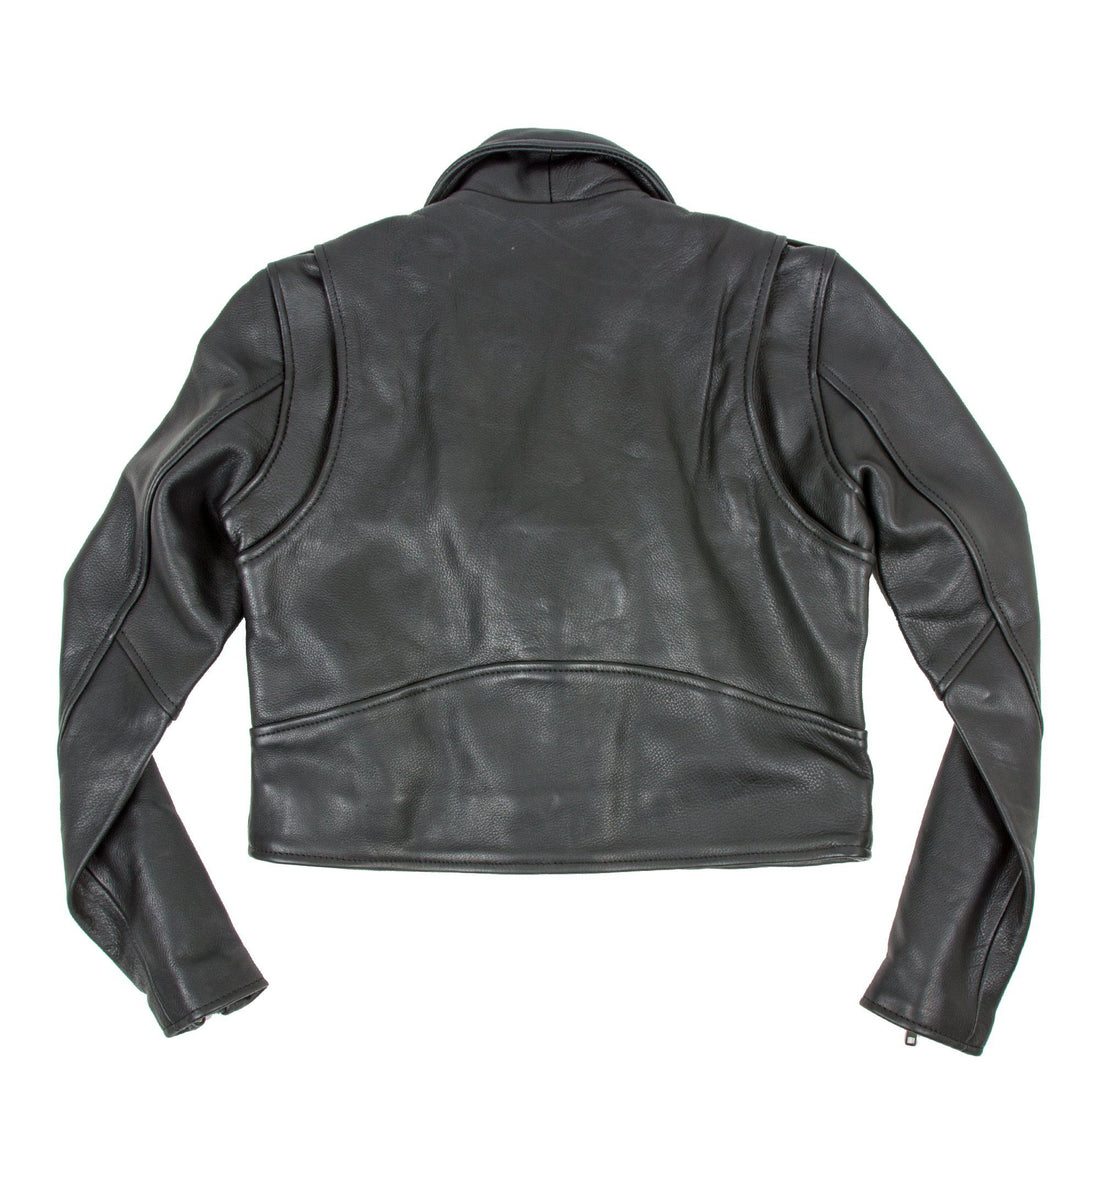 INR x Understated Leather Women's Cropped Leather Jacket - Outerwear - Iron and Resin